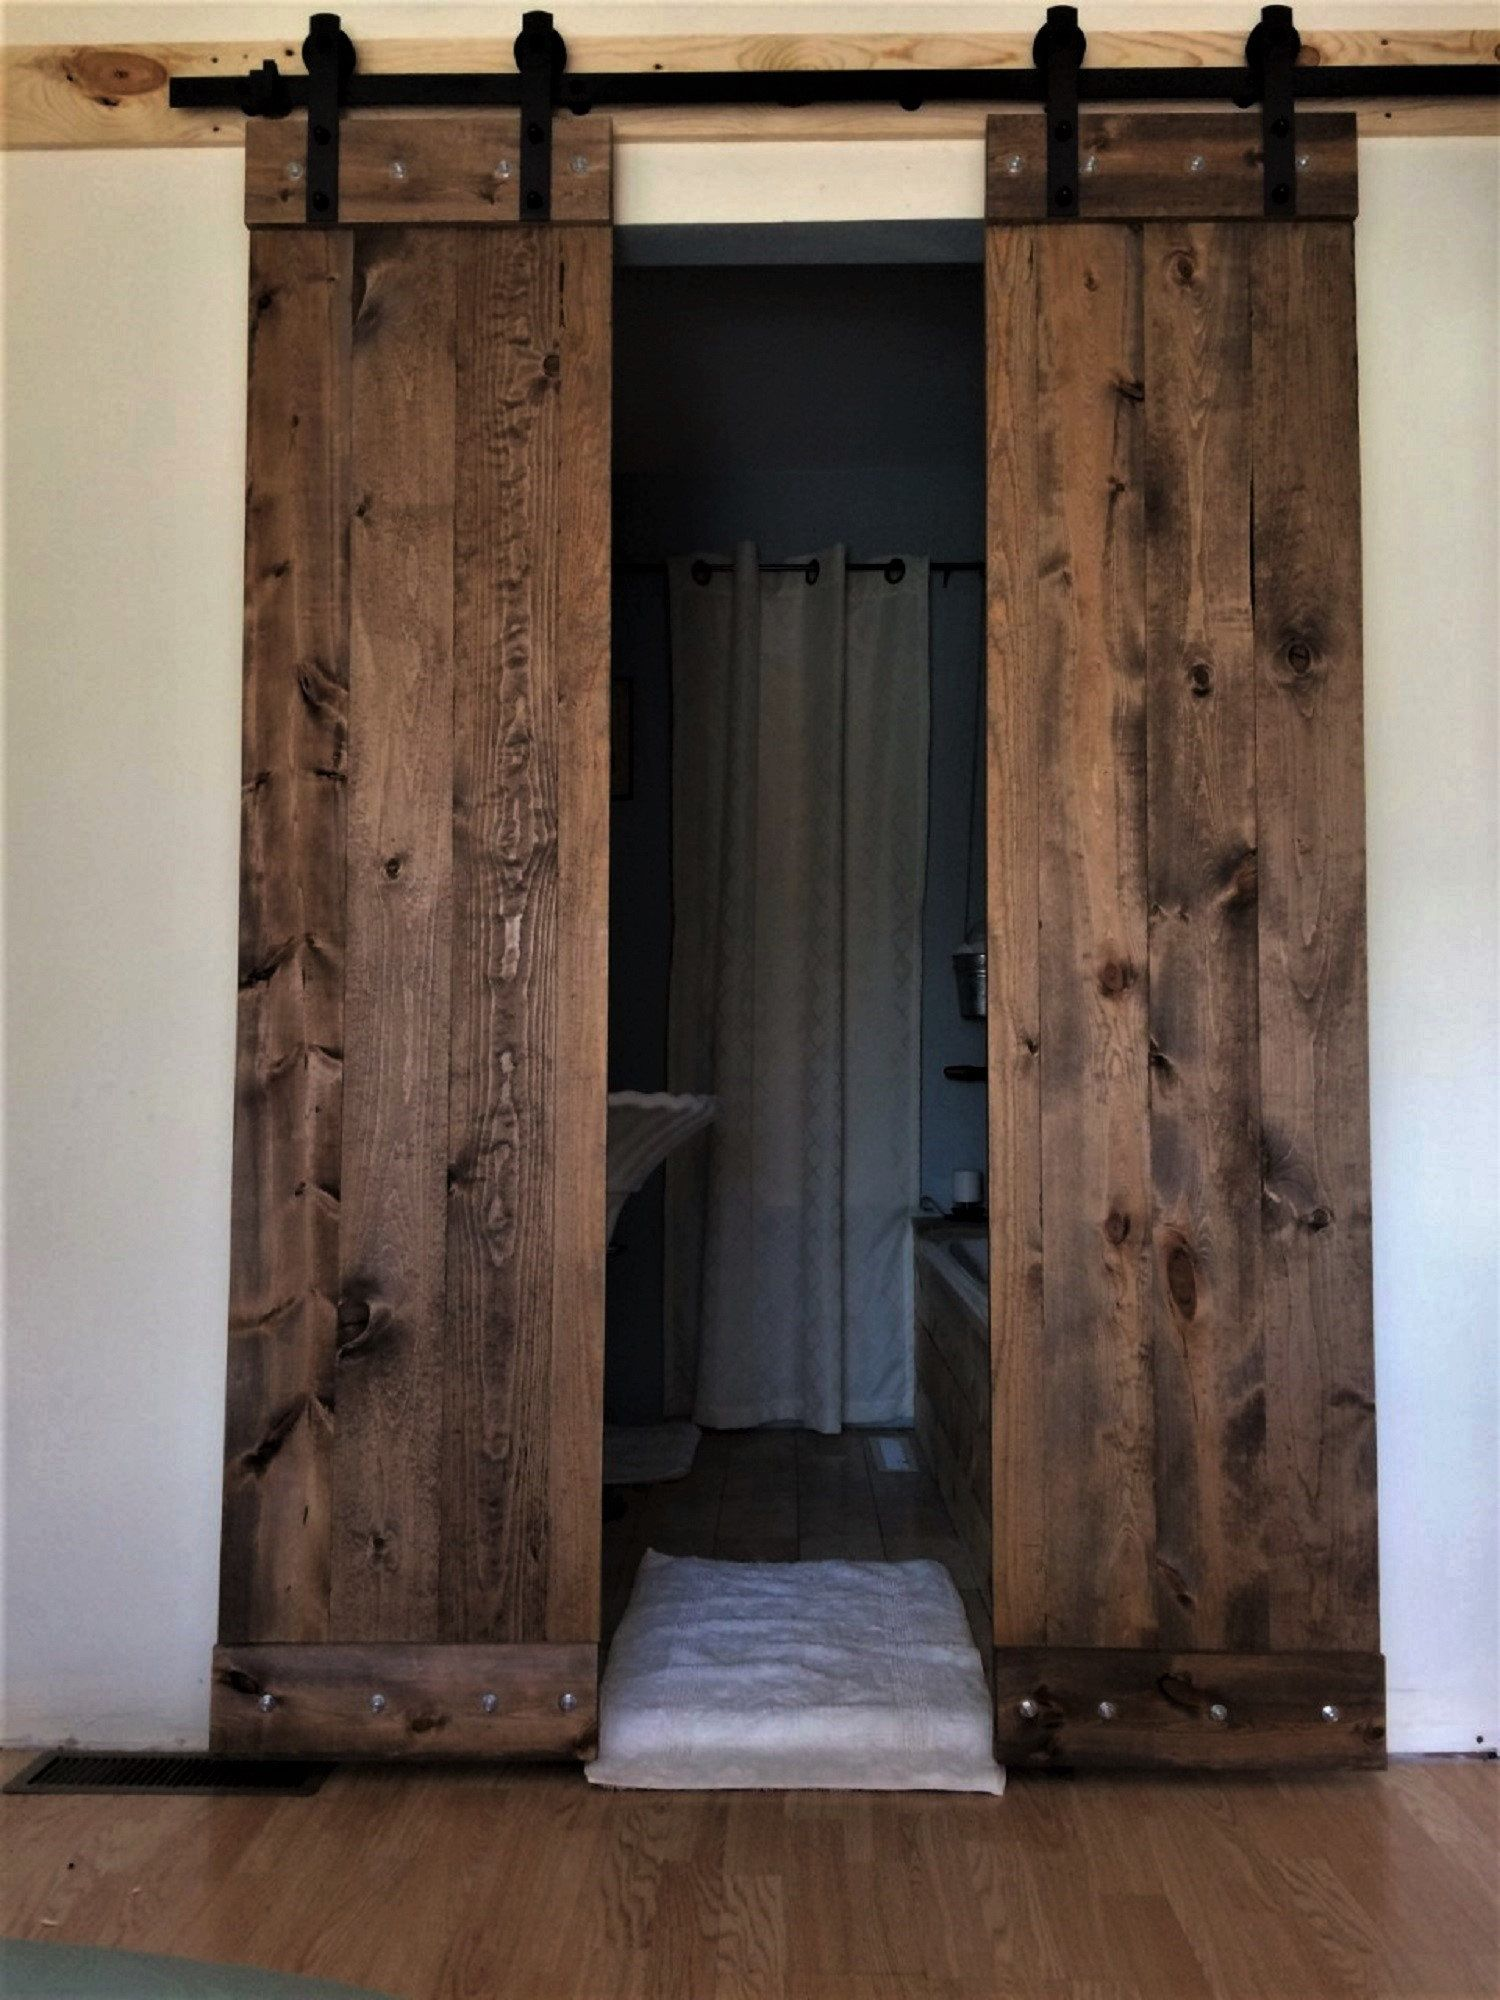 Double Barn Doors Hardware 6 6ft Wide Sliding Double Barndoor Track Kit Solid Wood Interior Doors Z Pattern Option T0tal 36 Widex 84 Tall Double Barn Doors Barn Door Barn Doors Sliding